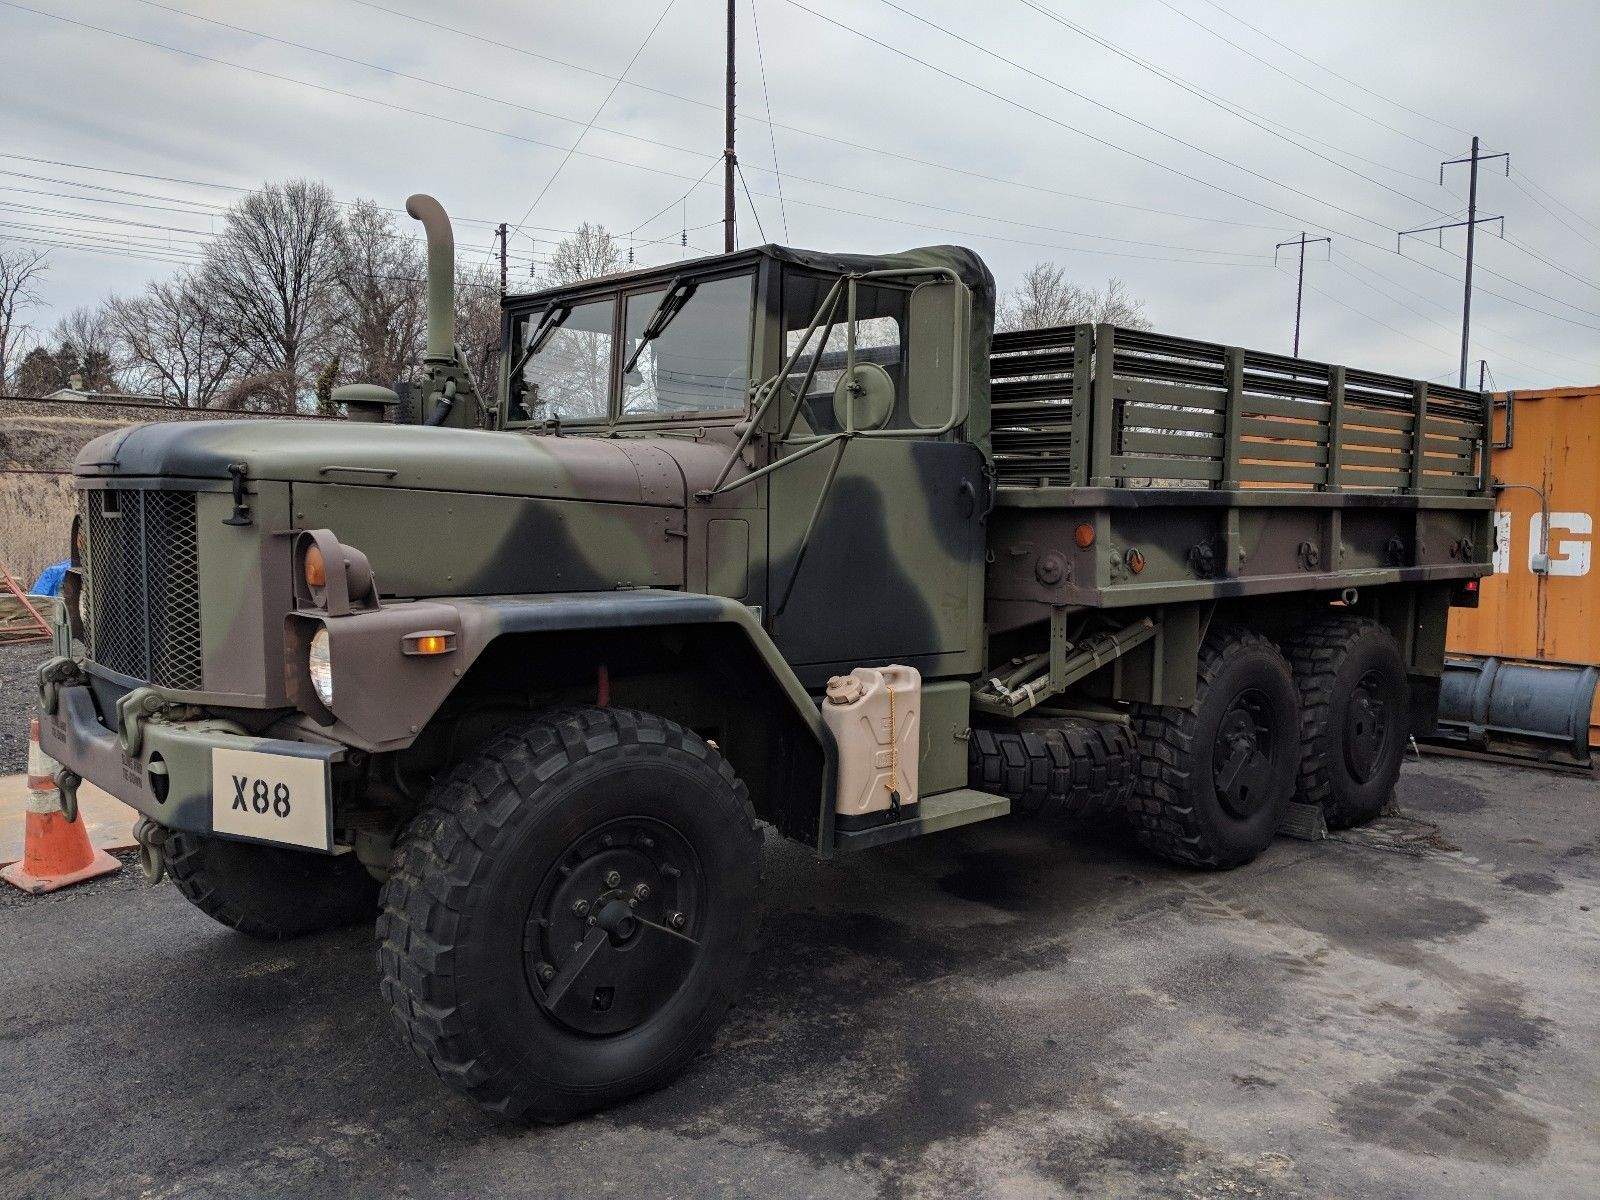 garaged 1993 AM General M35a3 Duece and 1 2 military